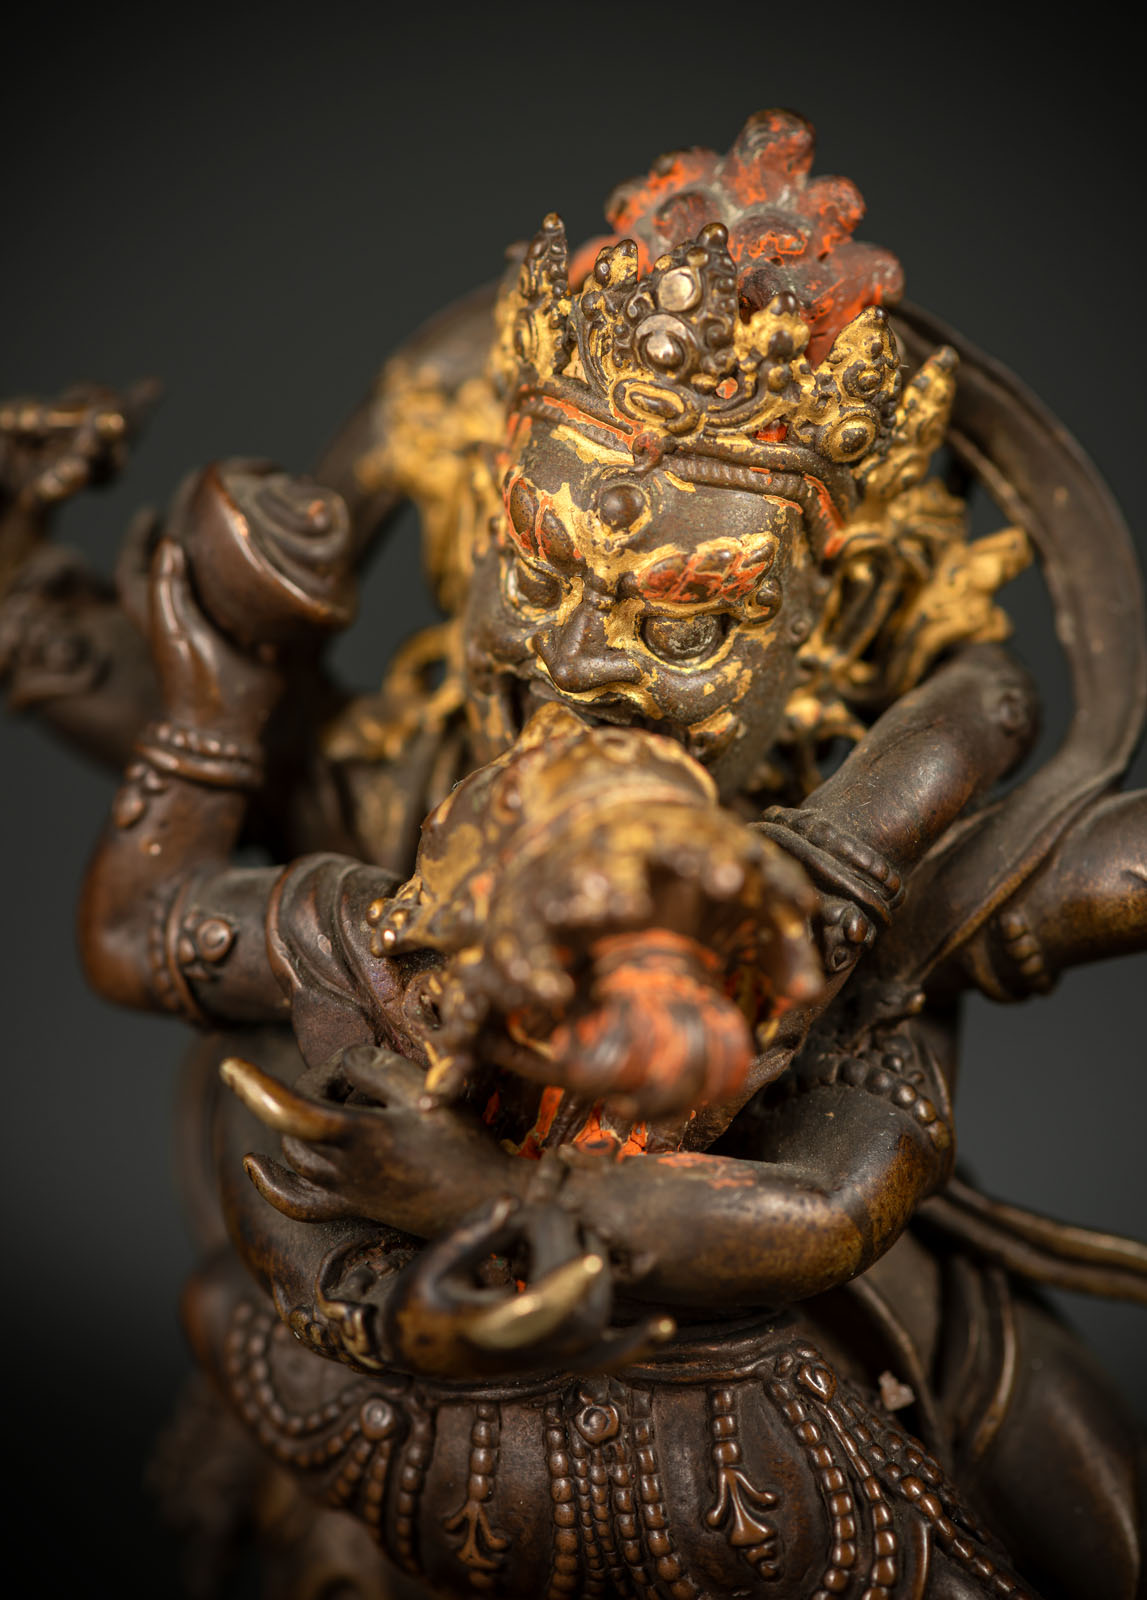 A RARE BRONZE EMANATION OF VAJRAPANI ON A LOTUS - Image 5 of 10